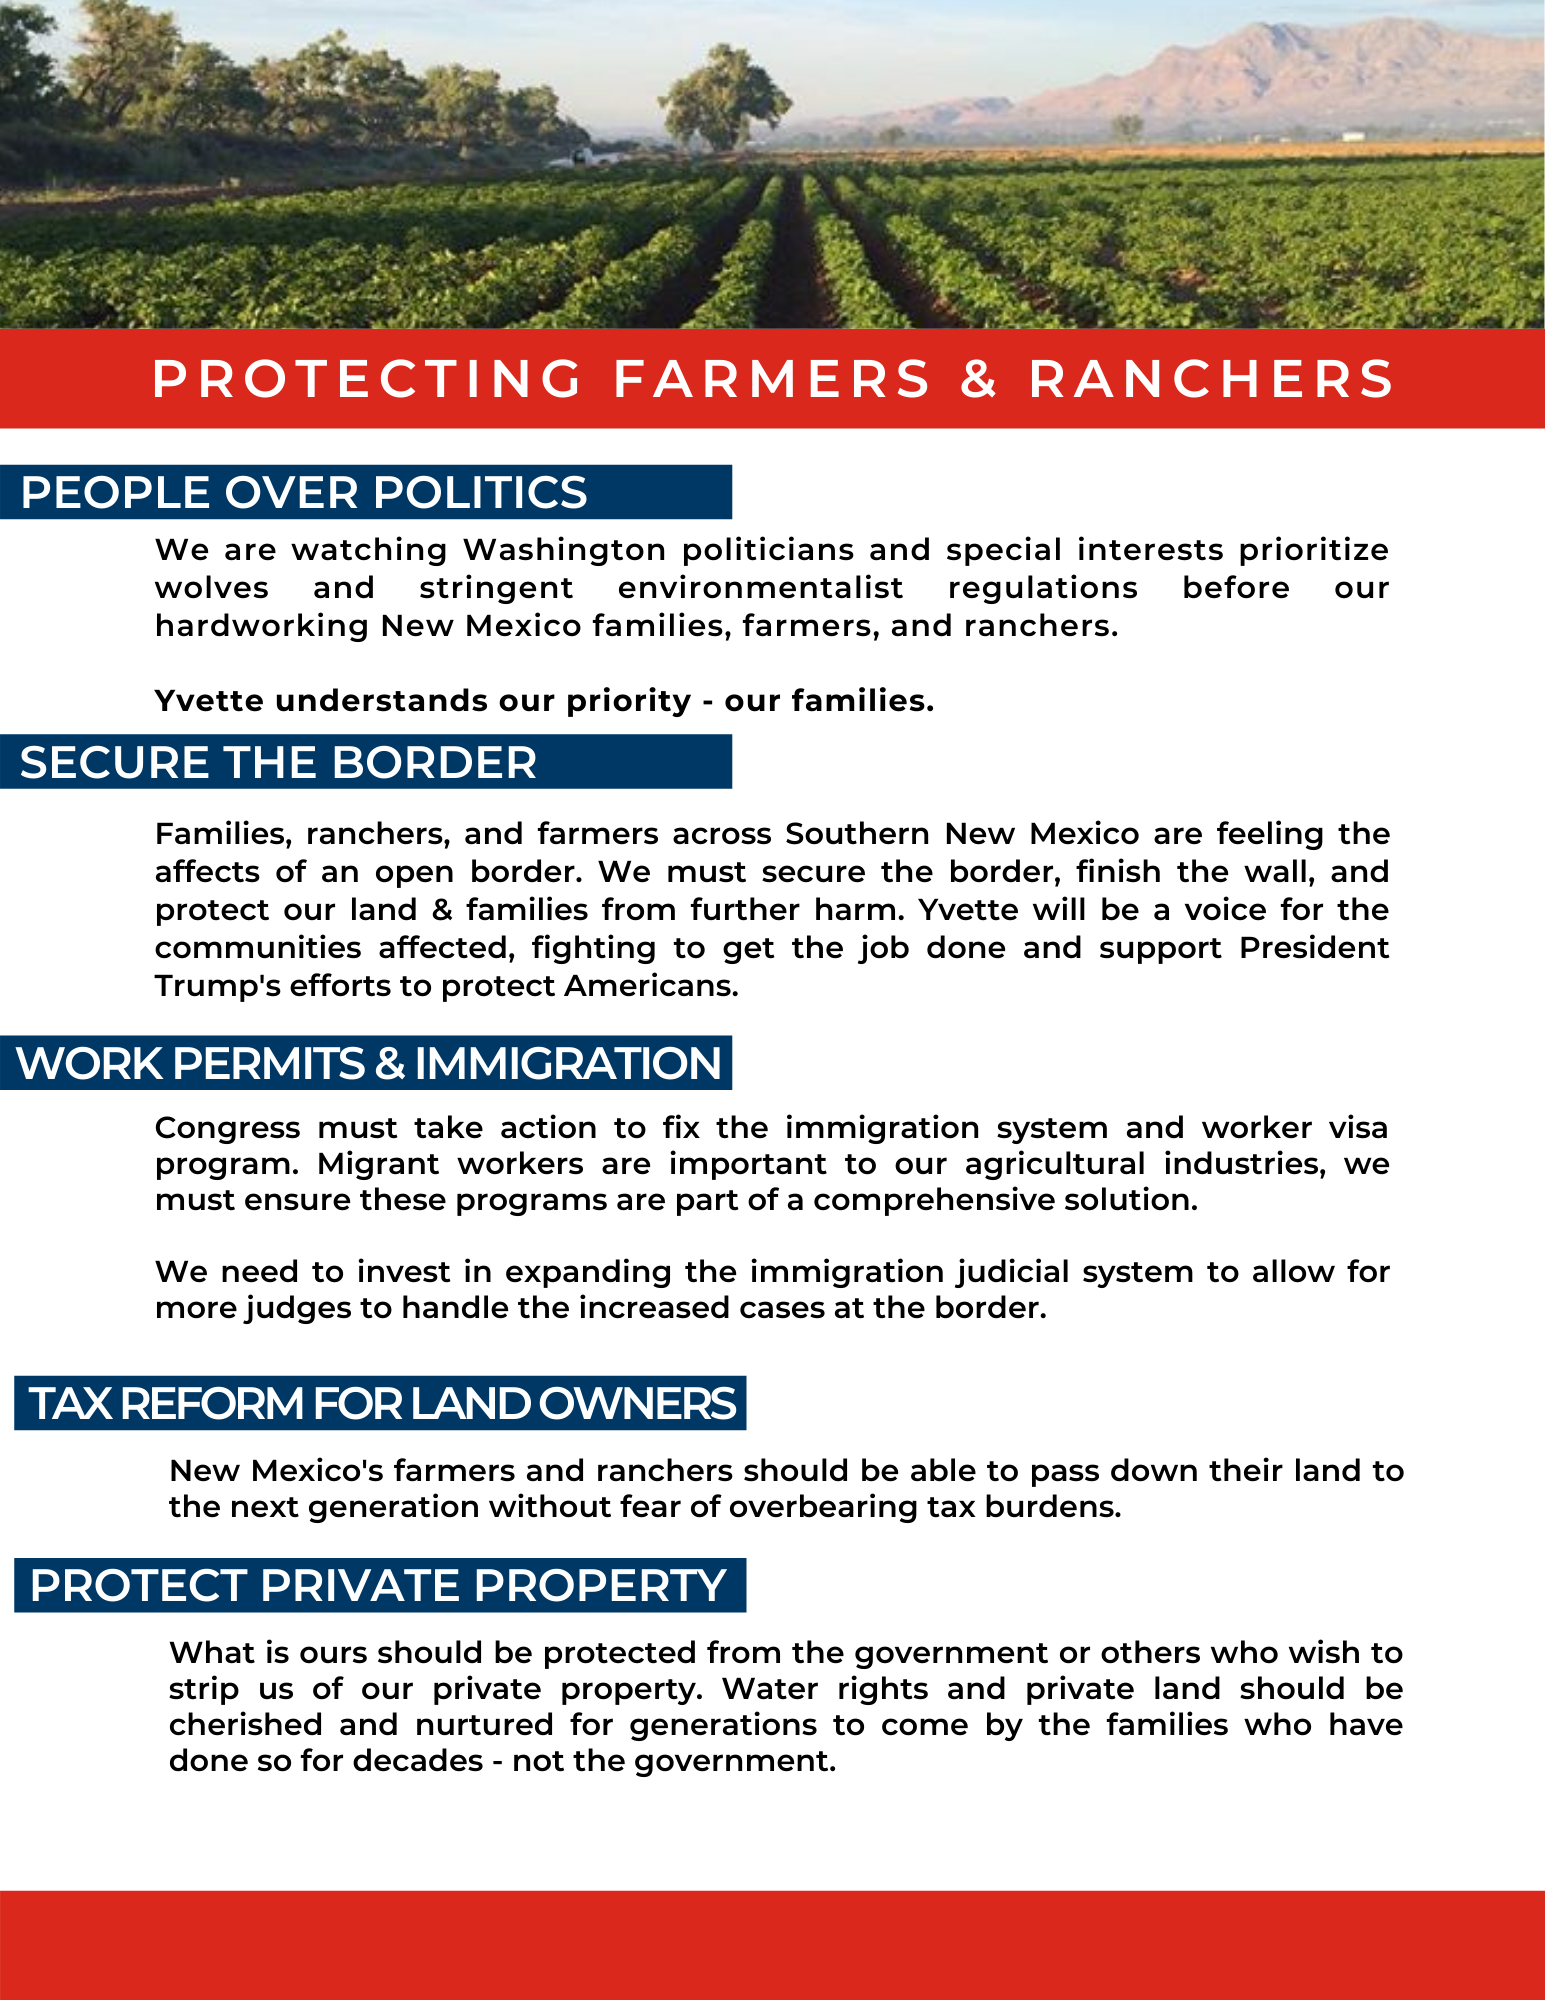 Protecting Farmers & Ranchers